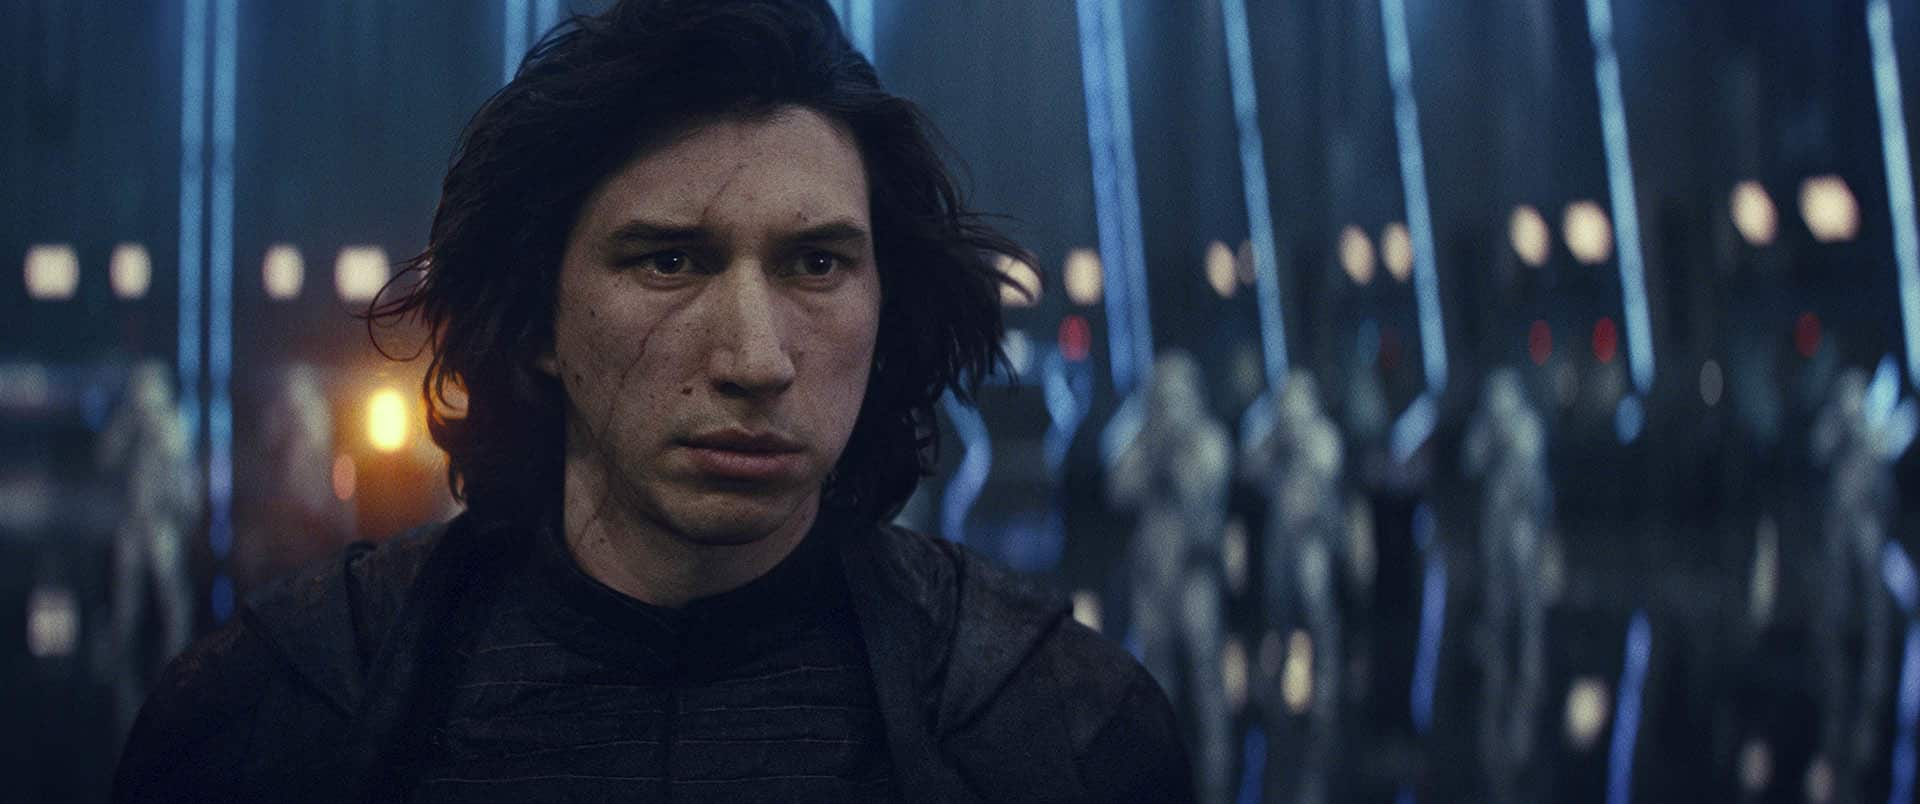 Kylo Ren The Rise of Skywalker